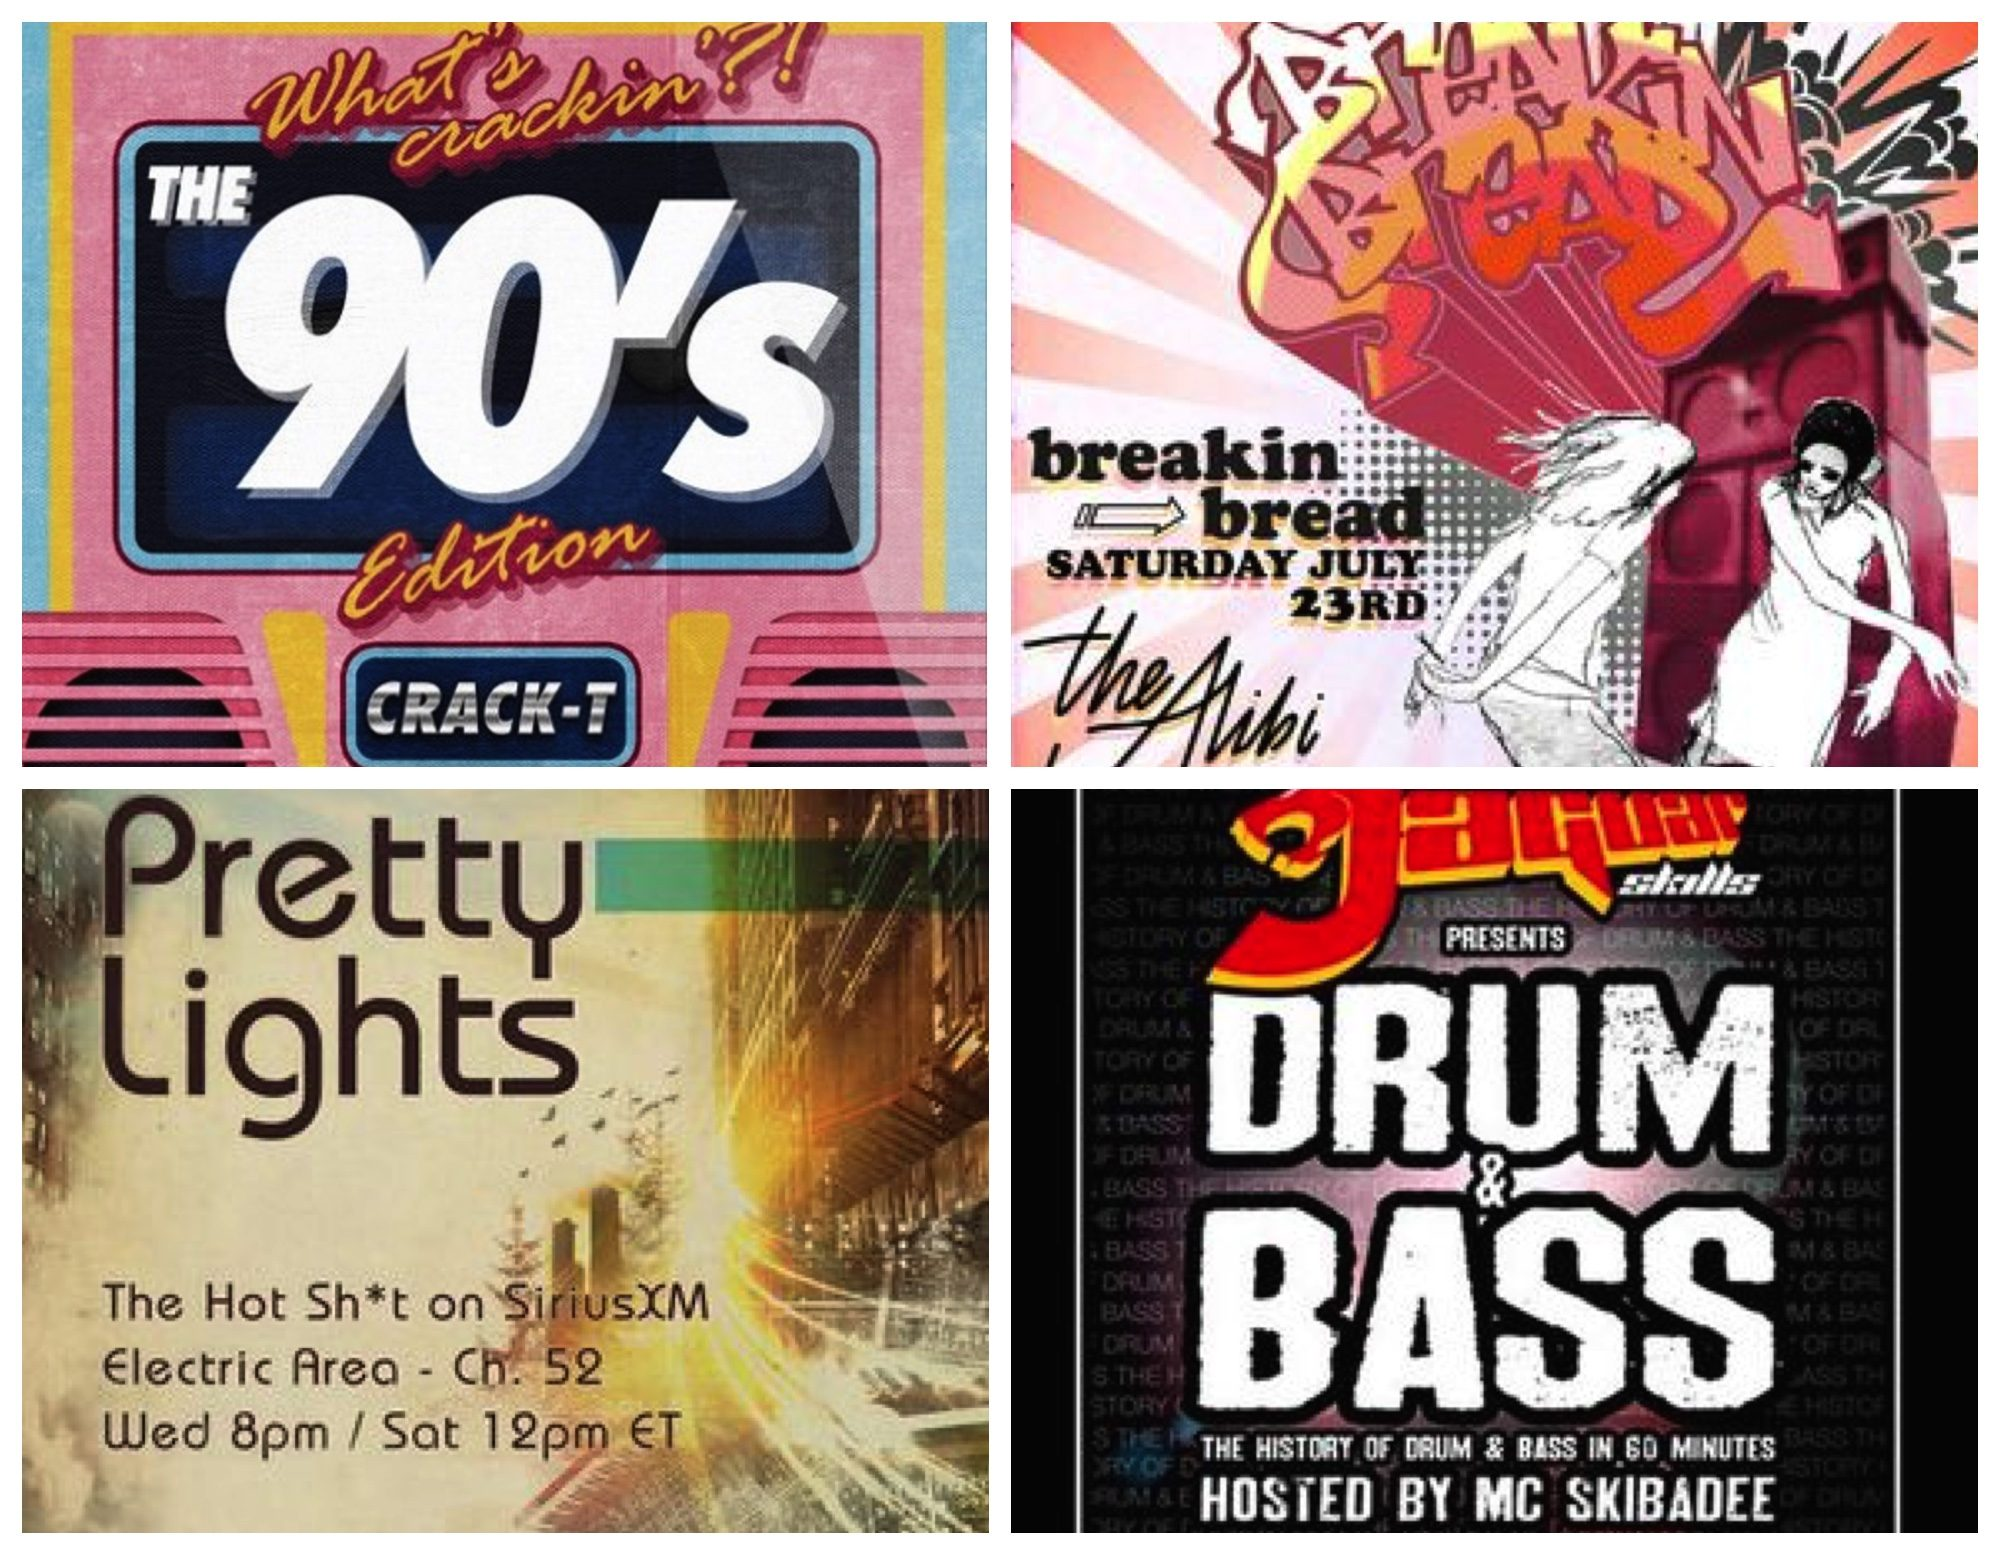 DJ Mixes - four awesome mixes for your weekend